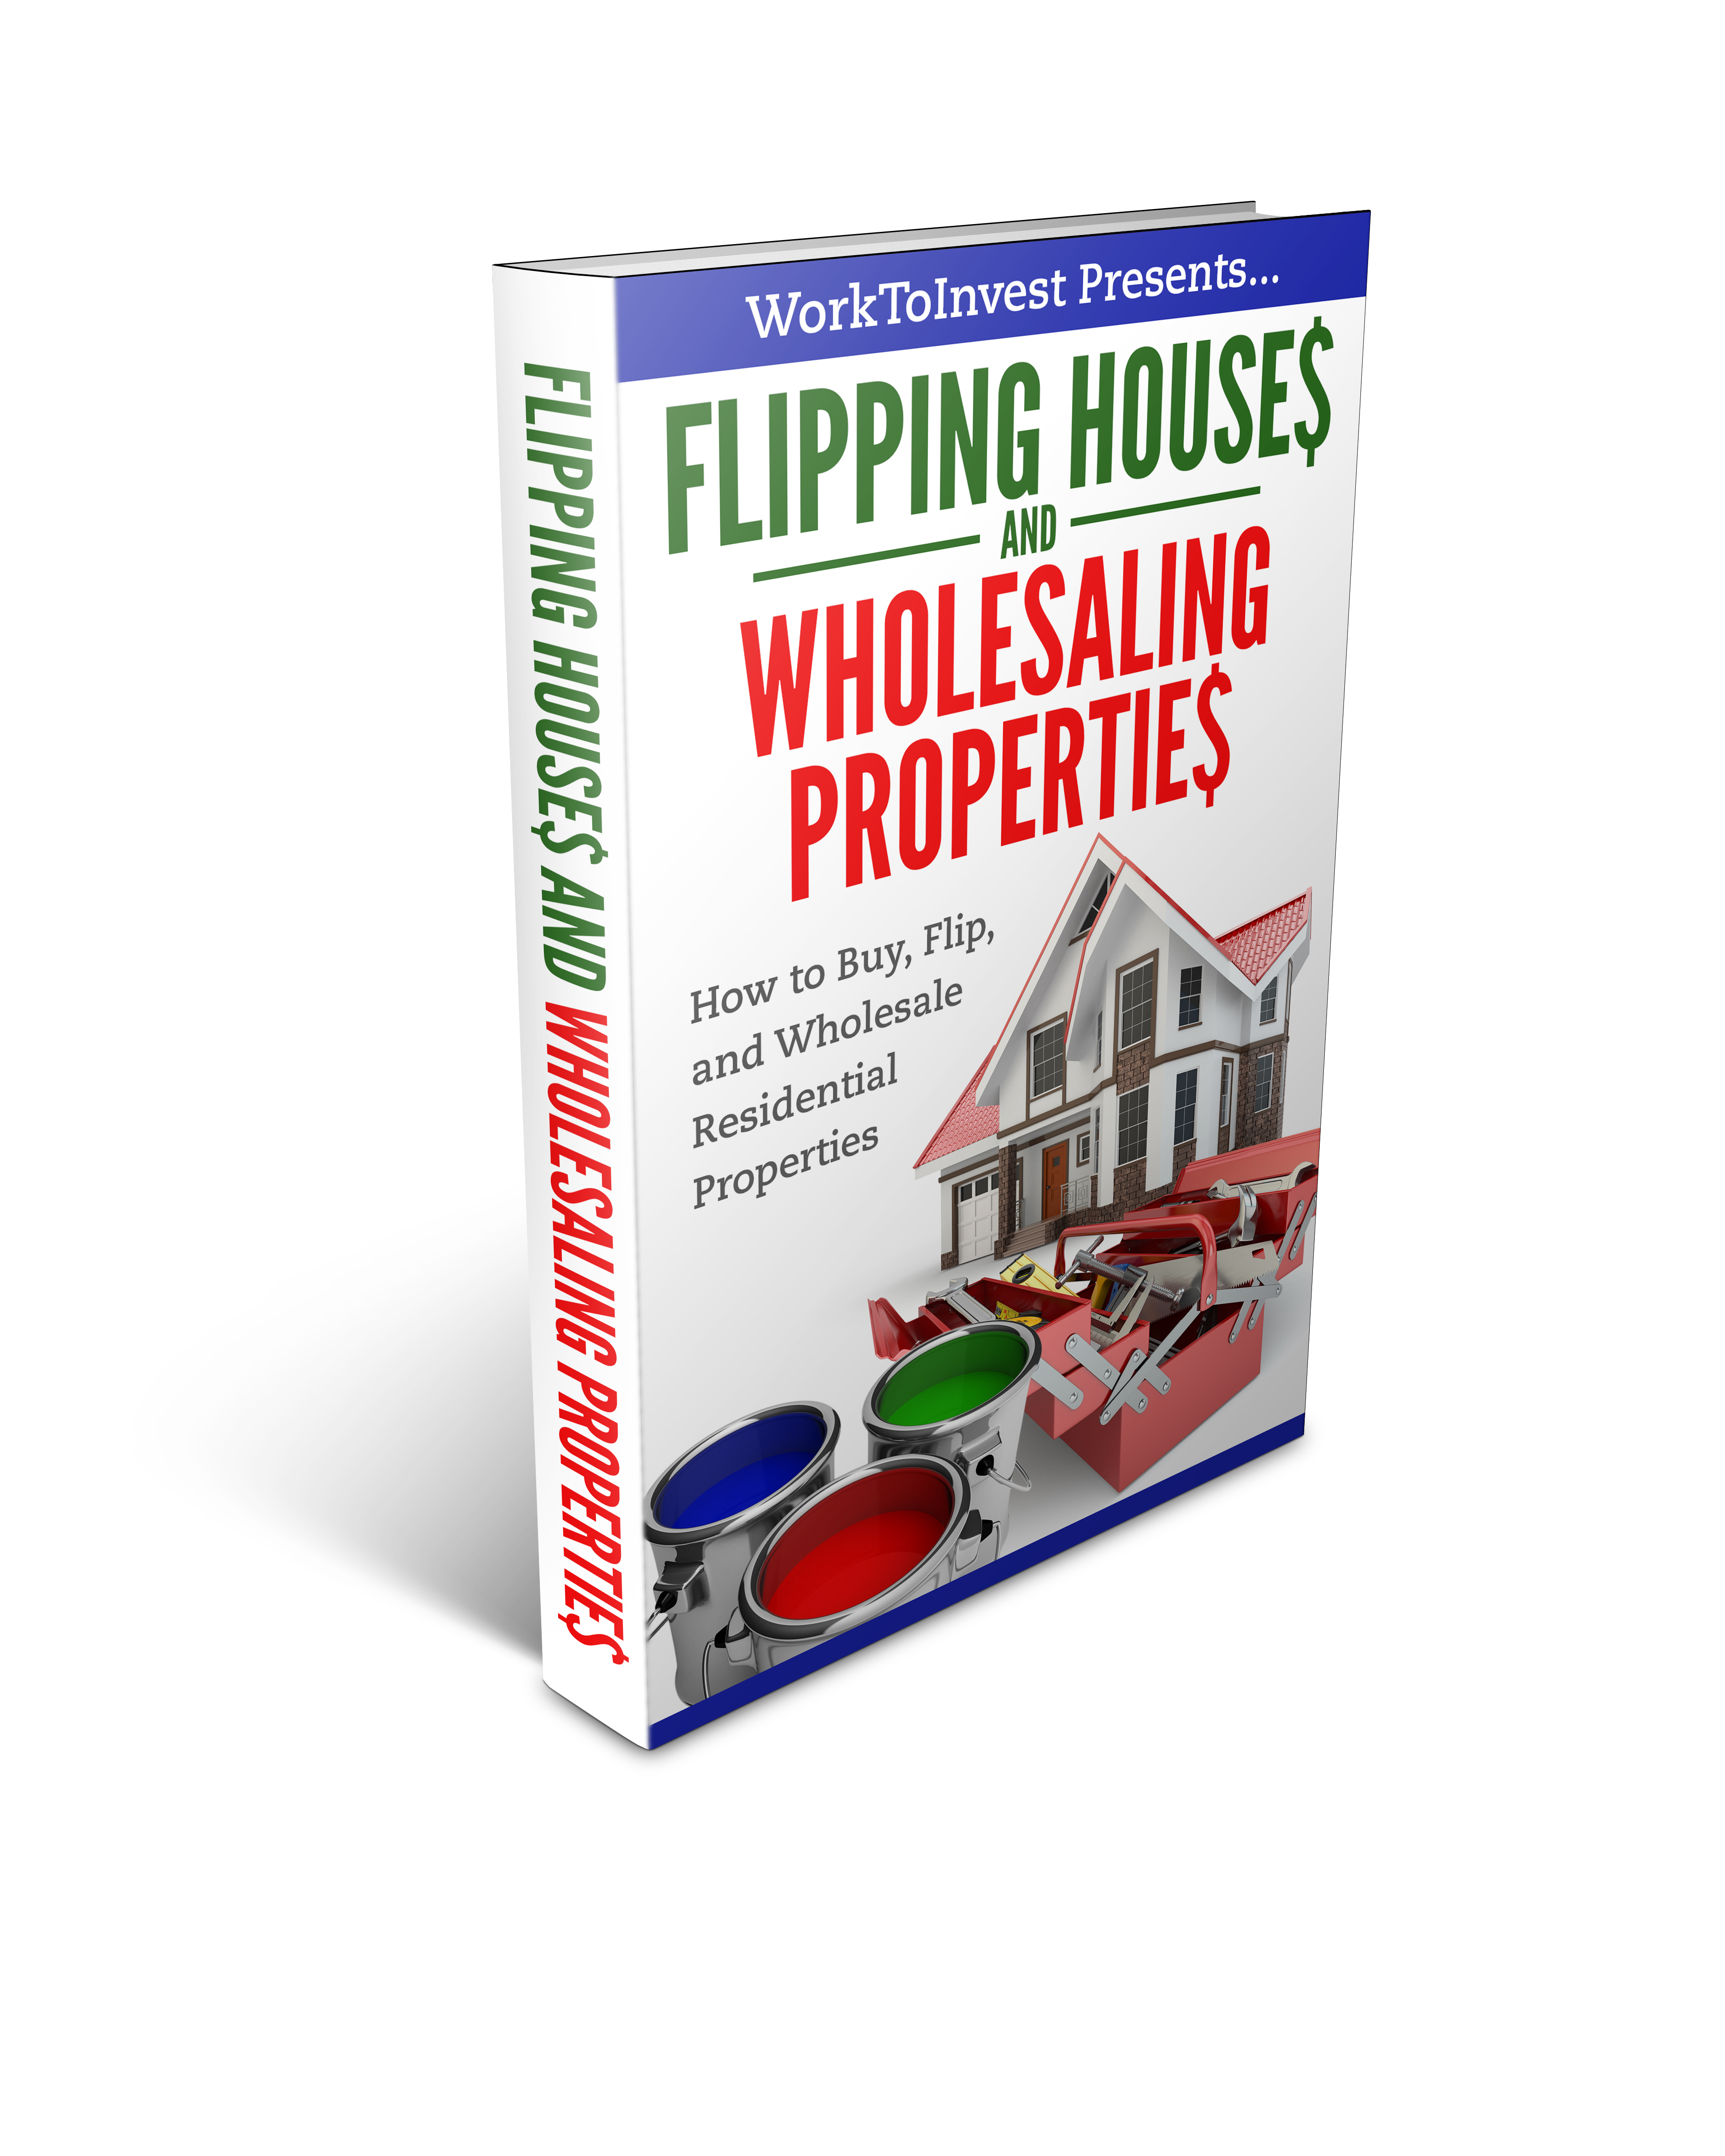 How to Flip Houses and how to wholesale properties